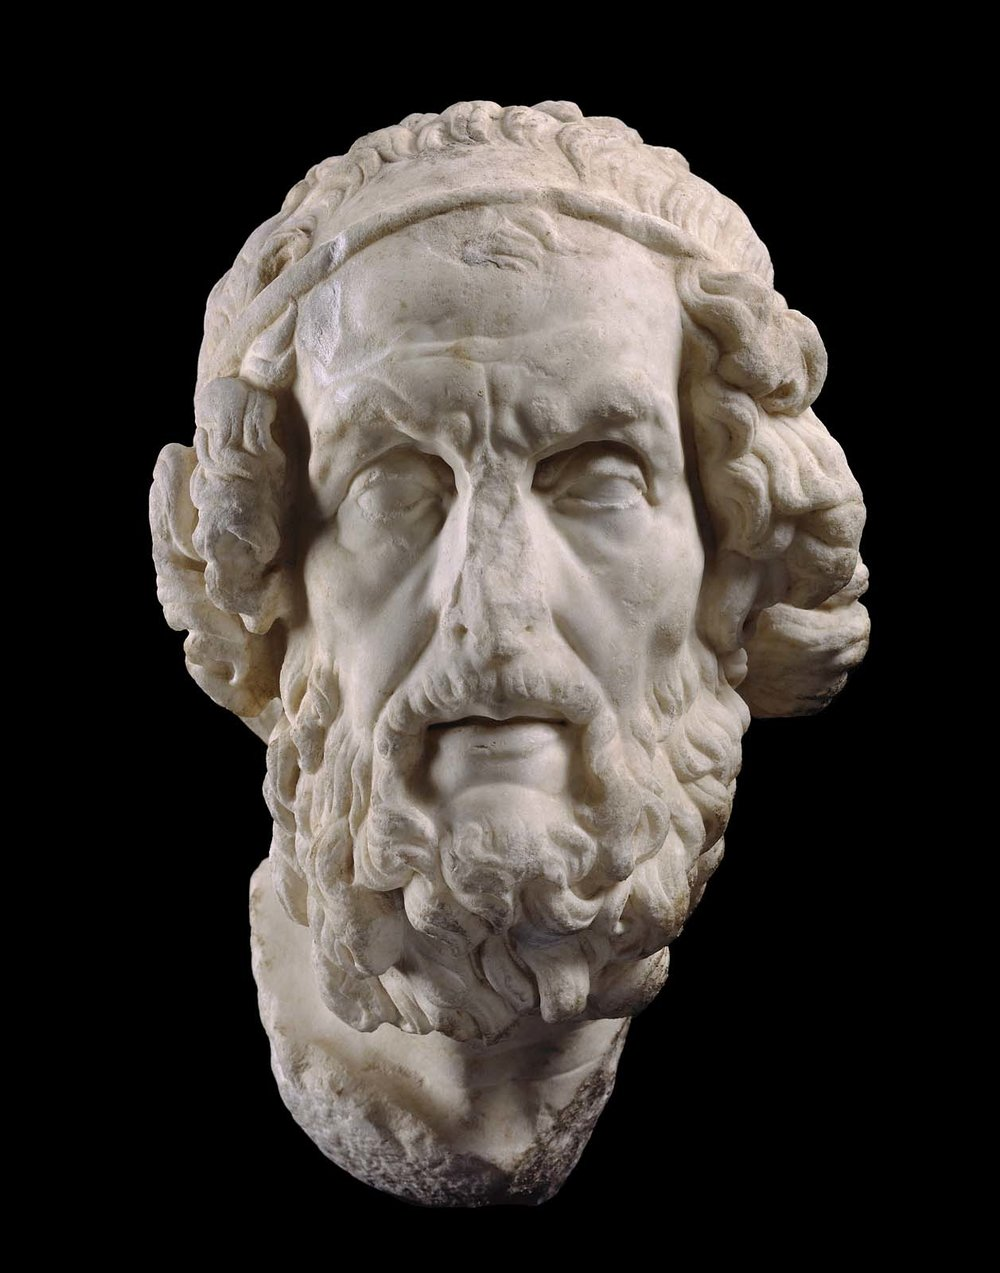 Homer, C. 100 BC. Marble. Museum of Fine Arts Boston.   Source: http://www.mfa.org/collections/object/homer-151122